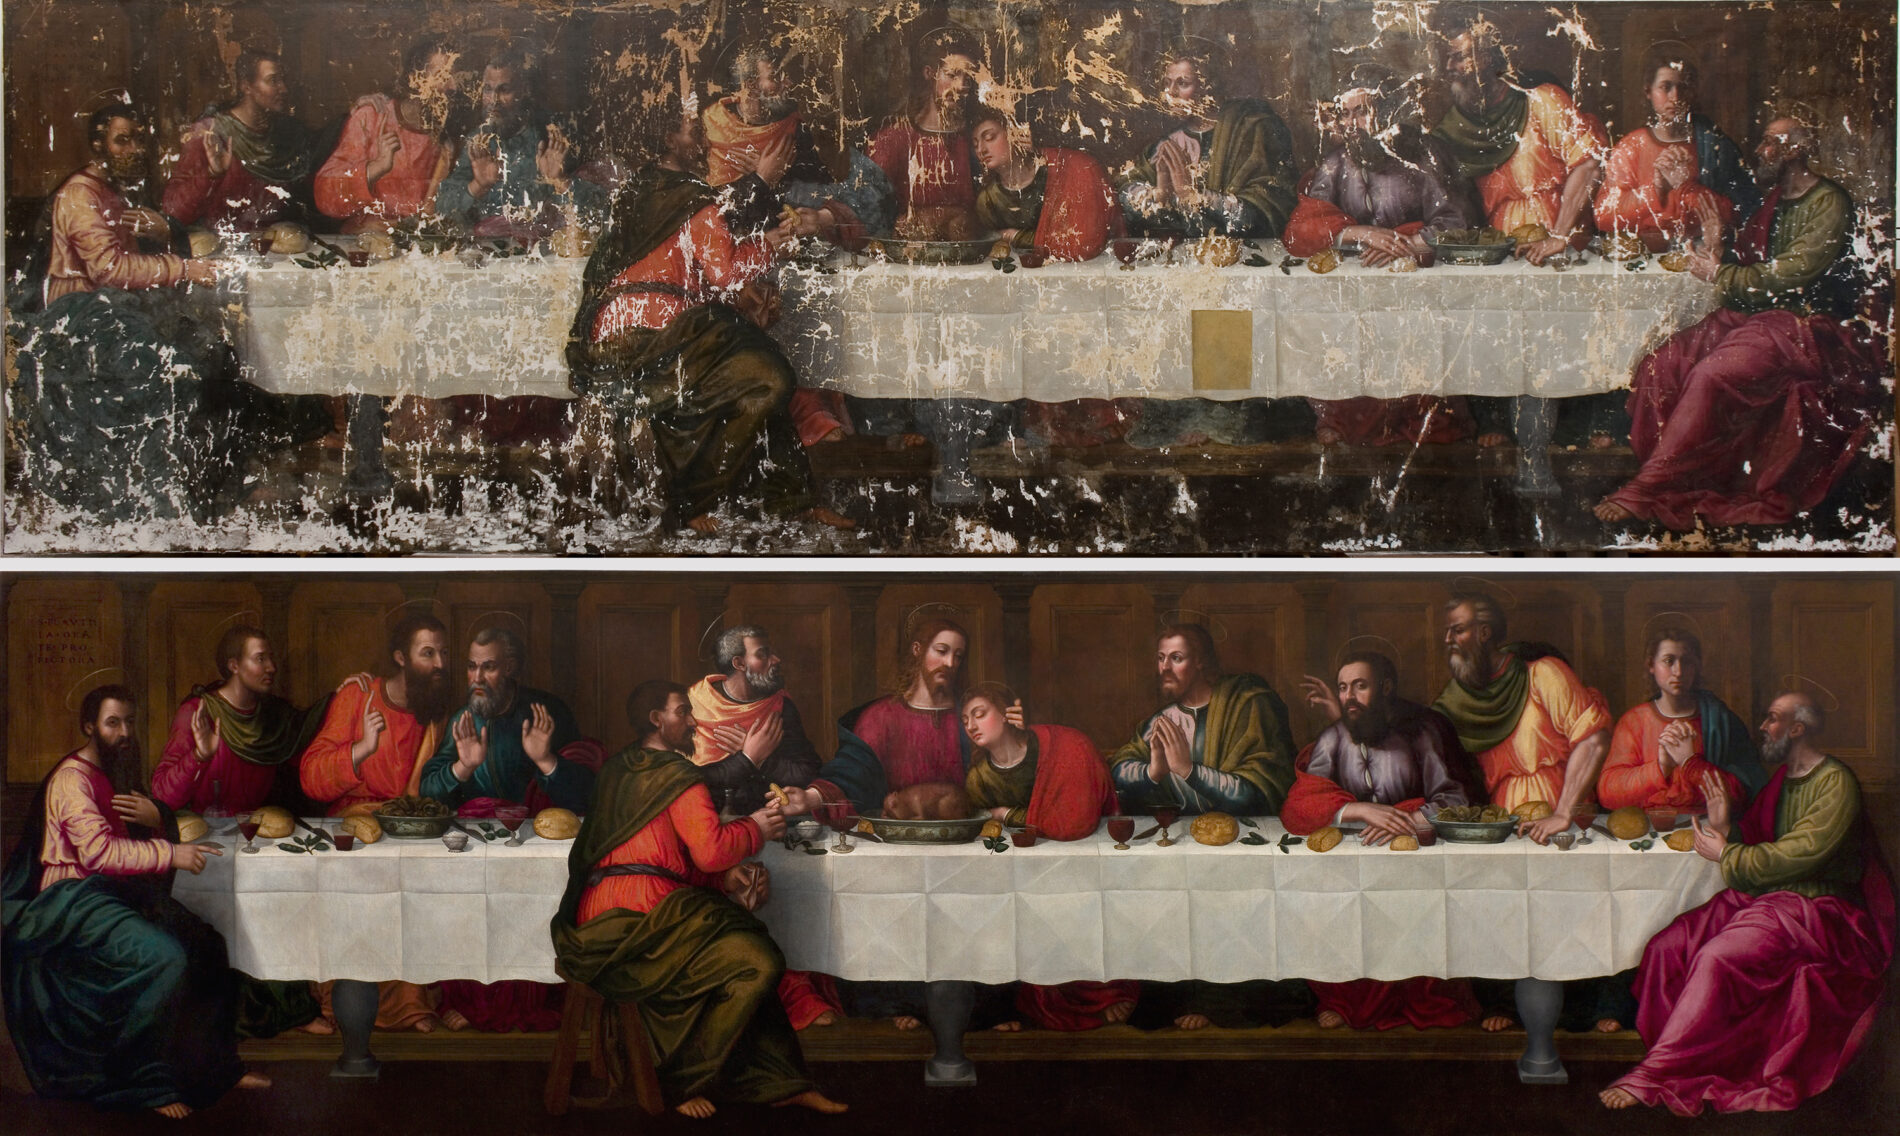 Nelli's Last Supper, before and after restoration.